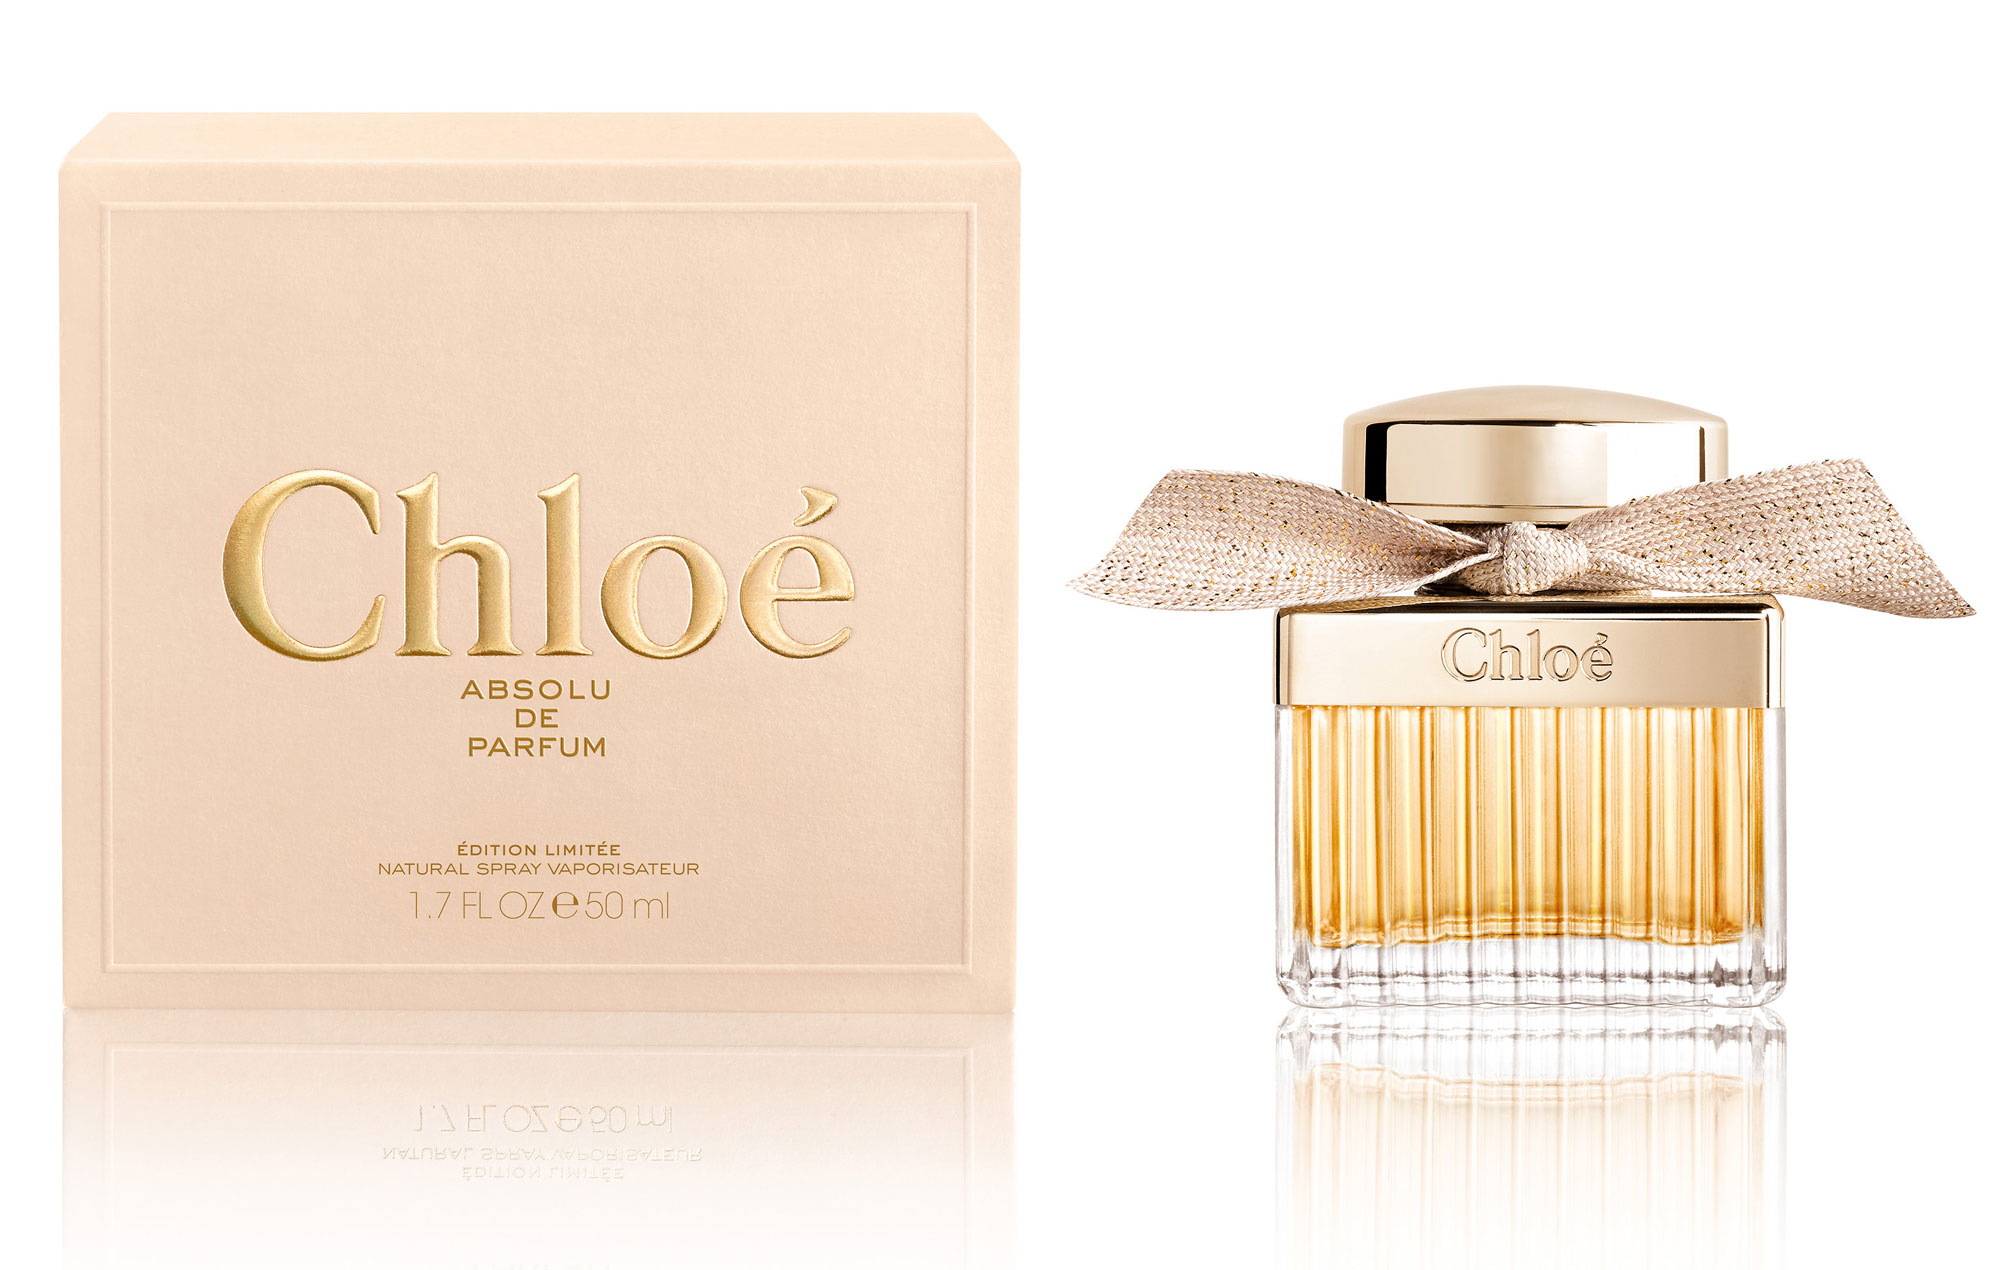 Perfumes Chloe Chloé Absolu De Parfum Chloe Perfume A New Fragrance For